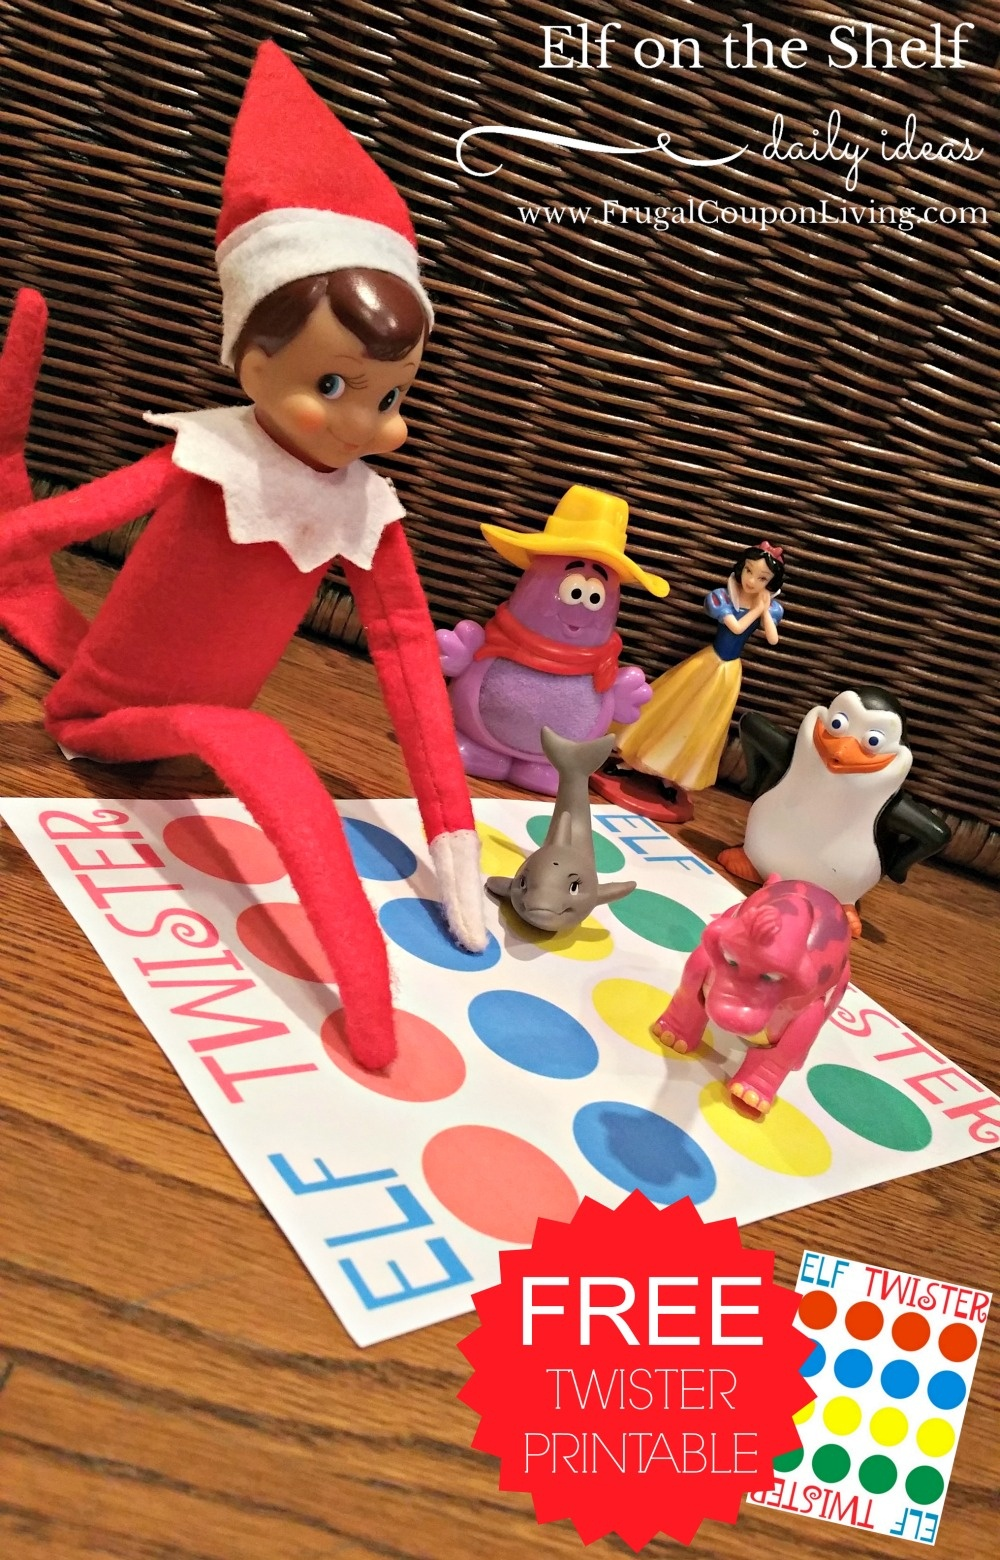 Elf On The Shelf Ideas | Elf Twister Printable - Elf On The Shelf Free Printable Ideas